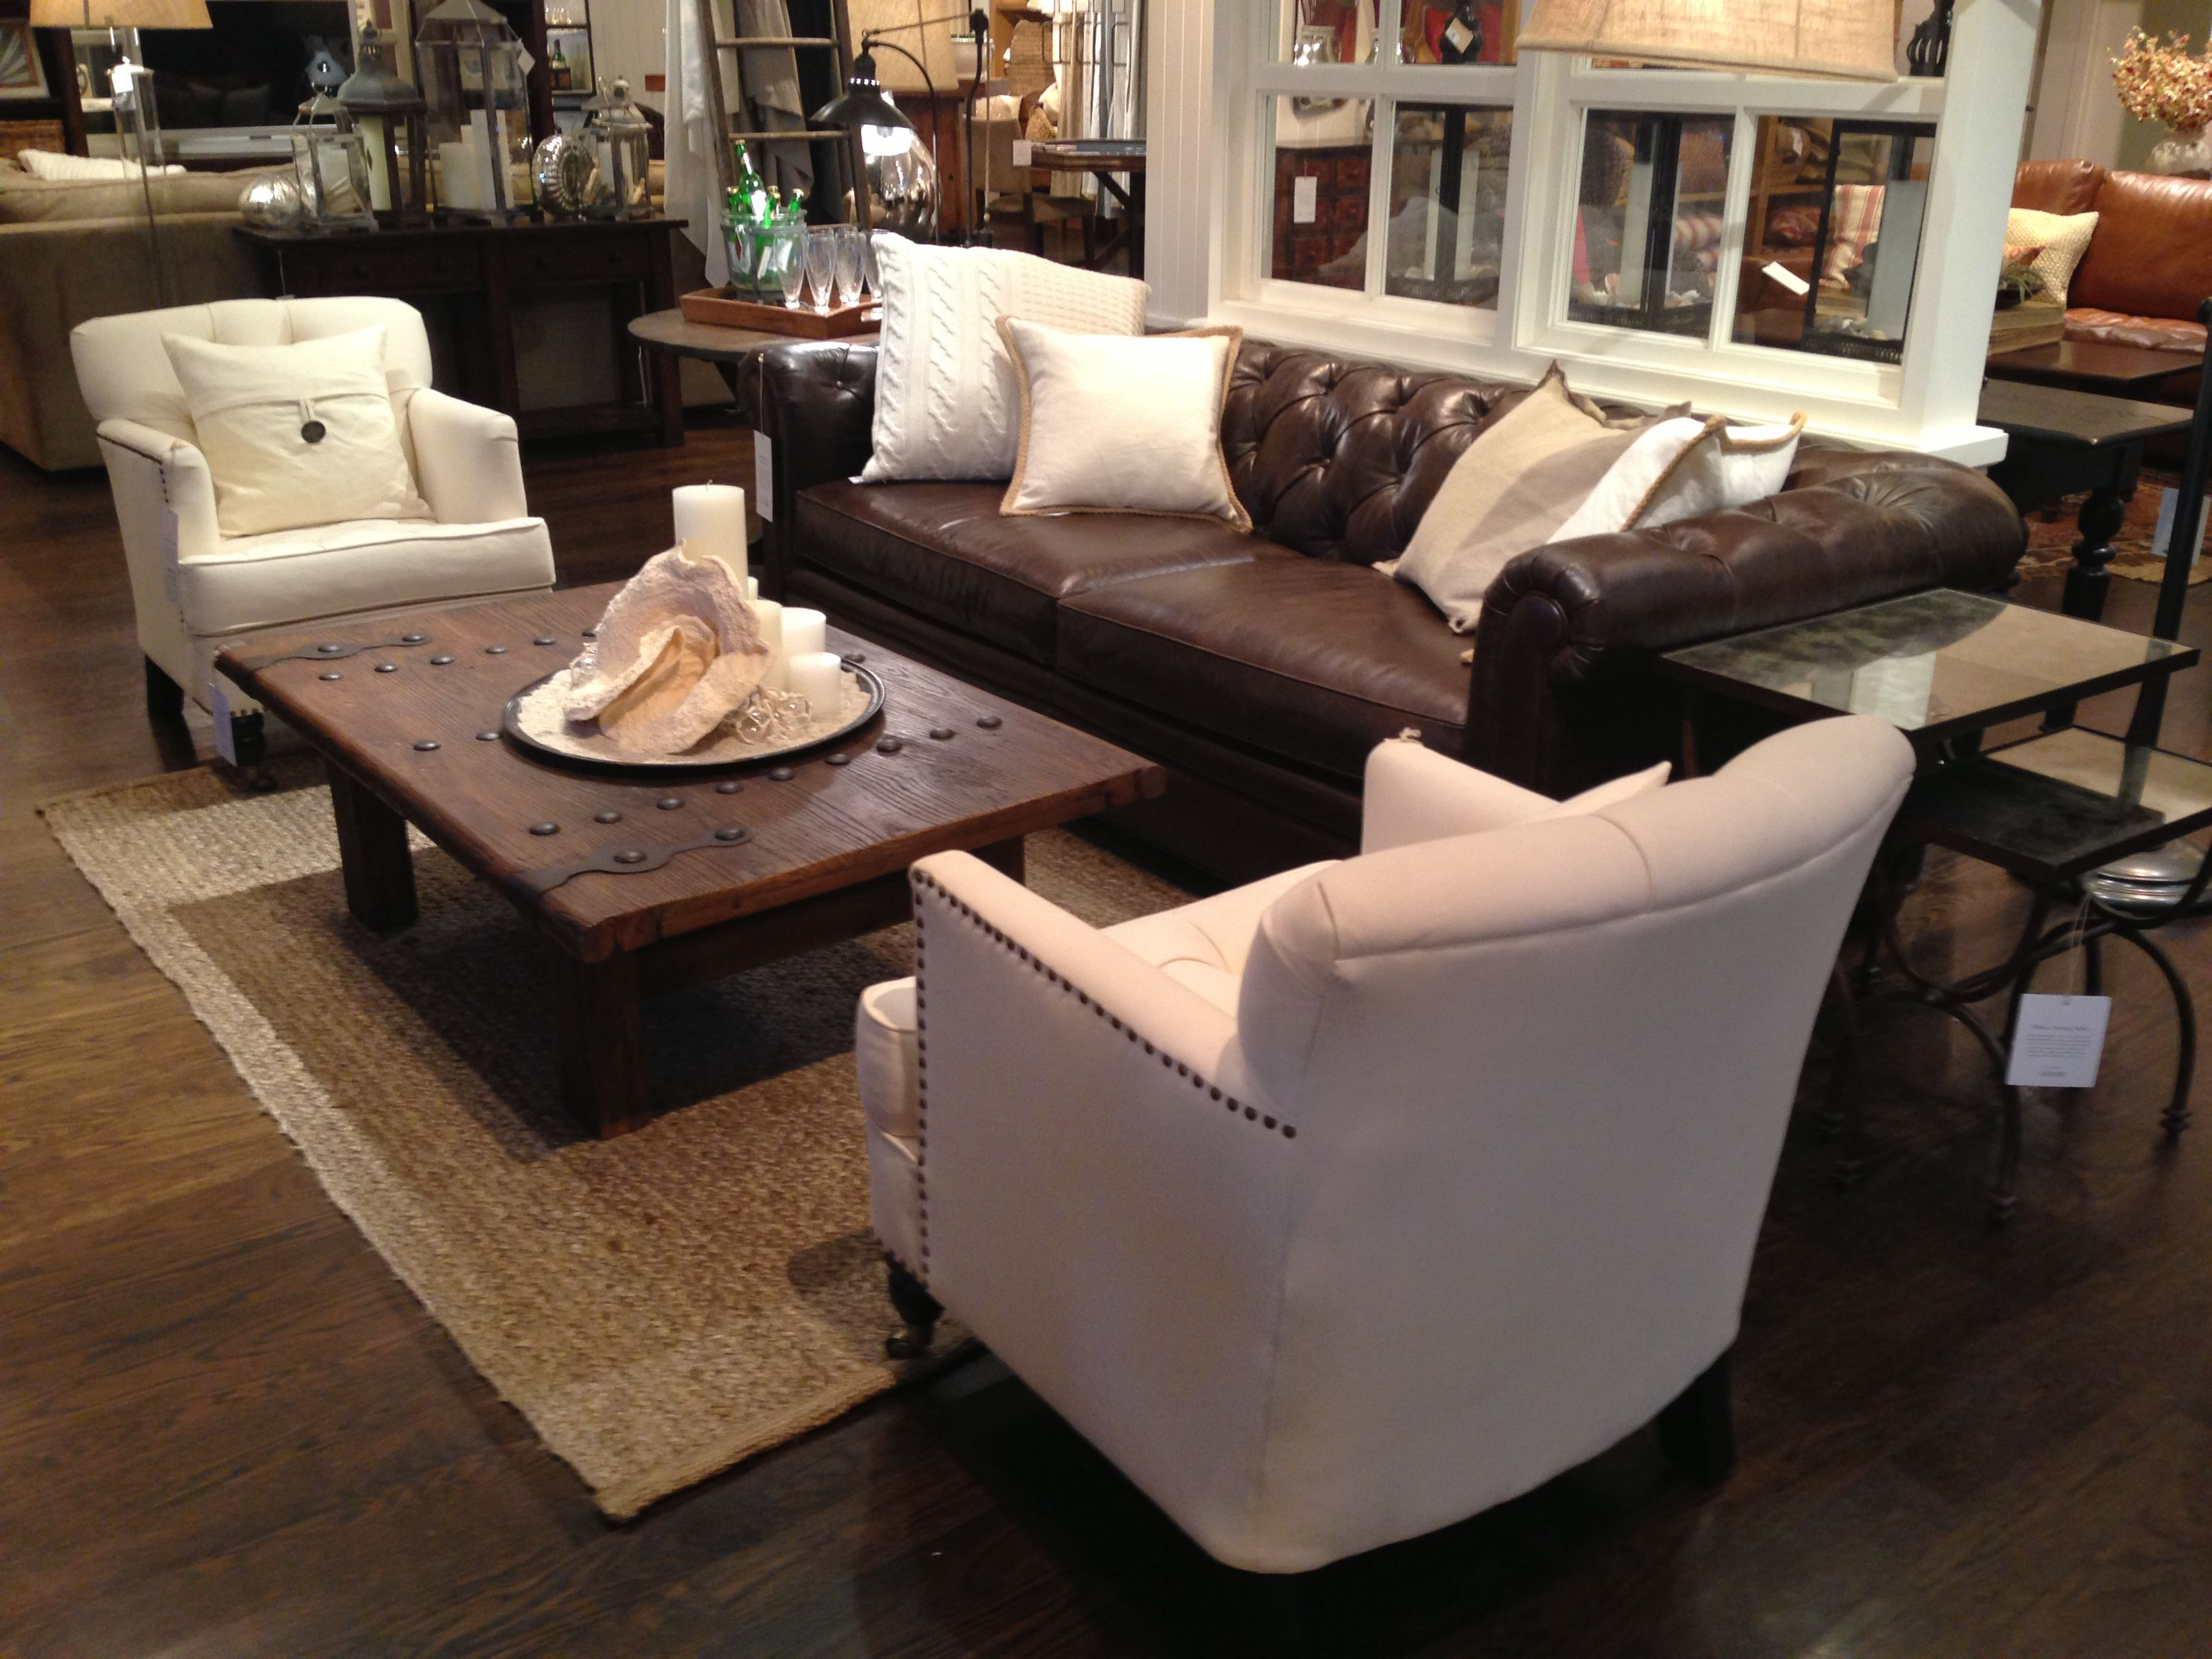 Leather living room furniture - Living Room Furniture Colors With Our Coffee Table Get A 780 Credit Score In 4 Weeks